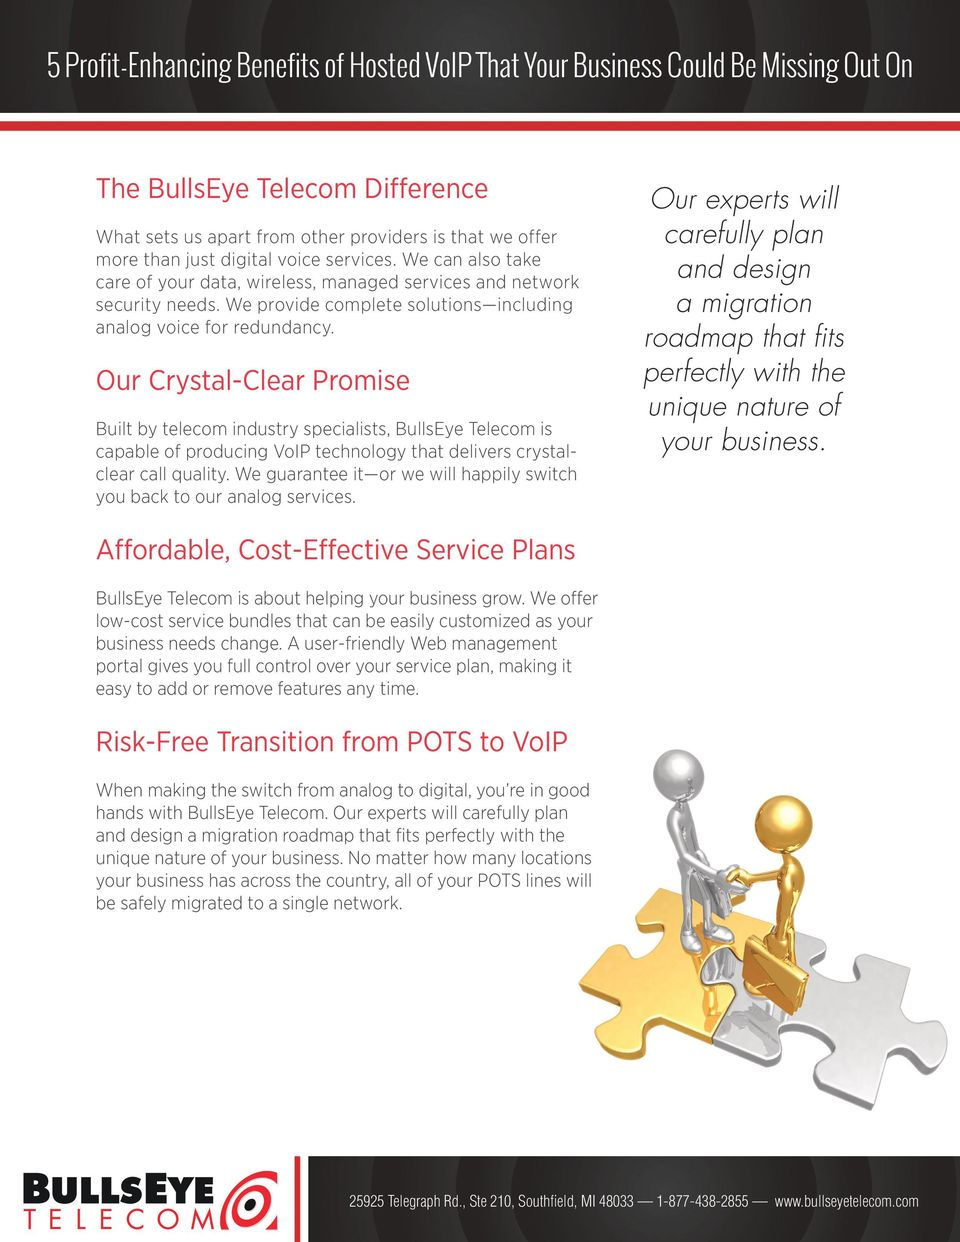 Our Crystal-Clear Promise Built by telecom industry specialists, BullsEye Telecom is capable of producing VoIP technology that delivers crystalclear call quality.